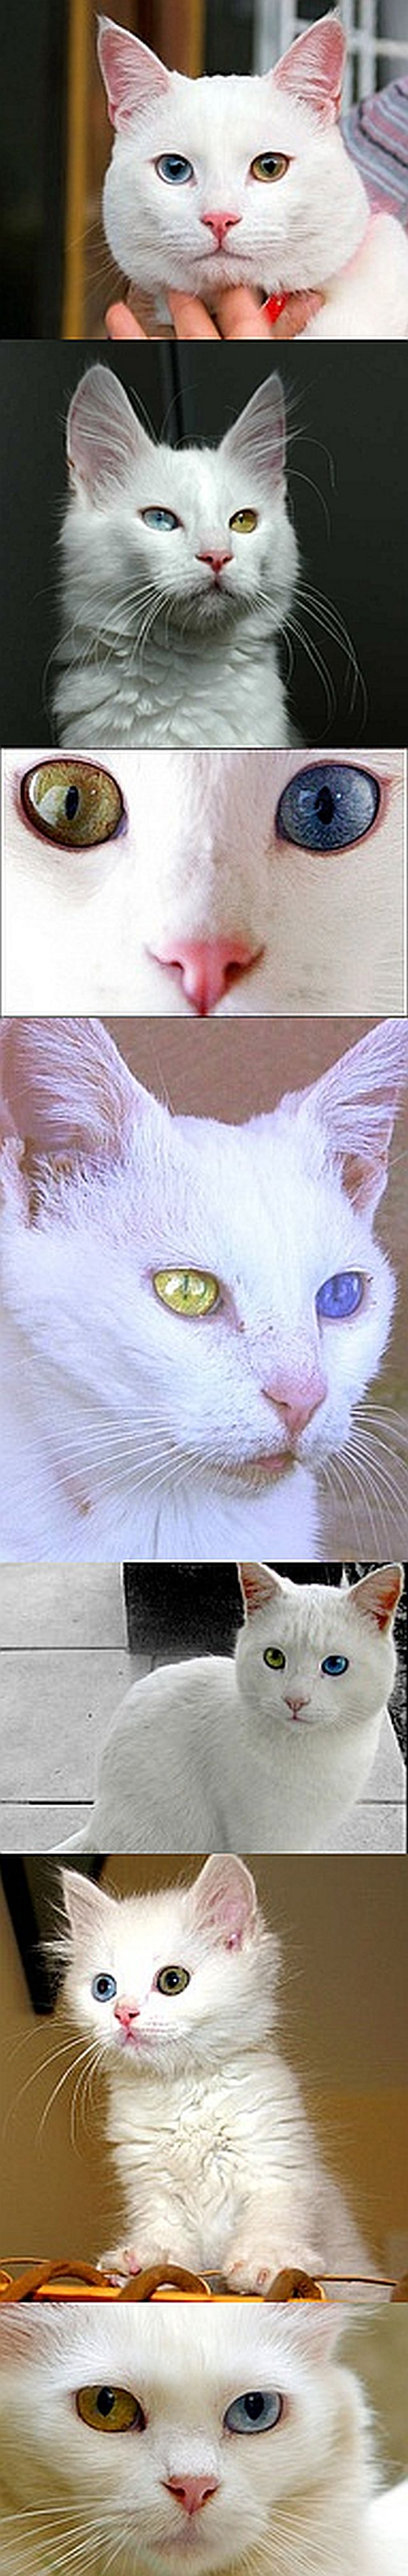 Real - The Van cat(Not to be confused with Turkish Van or Turkish Angora.) is a distinctive landrace of domestic cat found mainly in the Lake Van region of eastern Turkey. It is large, all-white, and frequently odd eyed. The naturally occurring Van cat type is the basis of the Turkish Van breed, internationally selectively bred with a more recently developed ruddy colouring pattern on the white, as standardised and recognised by many cat fancier organizations. #cats